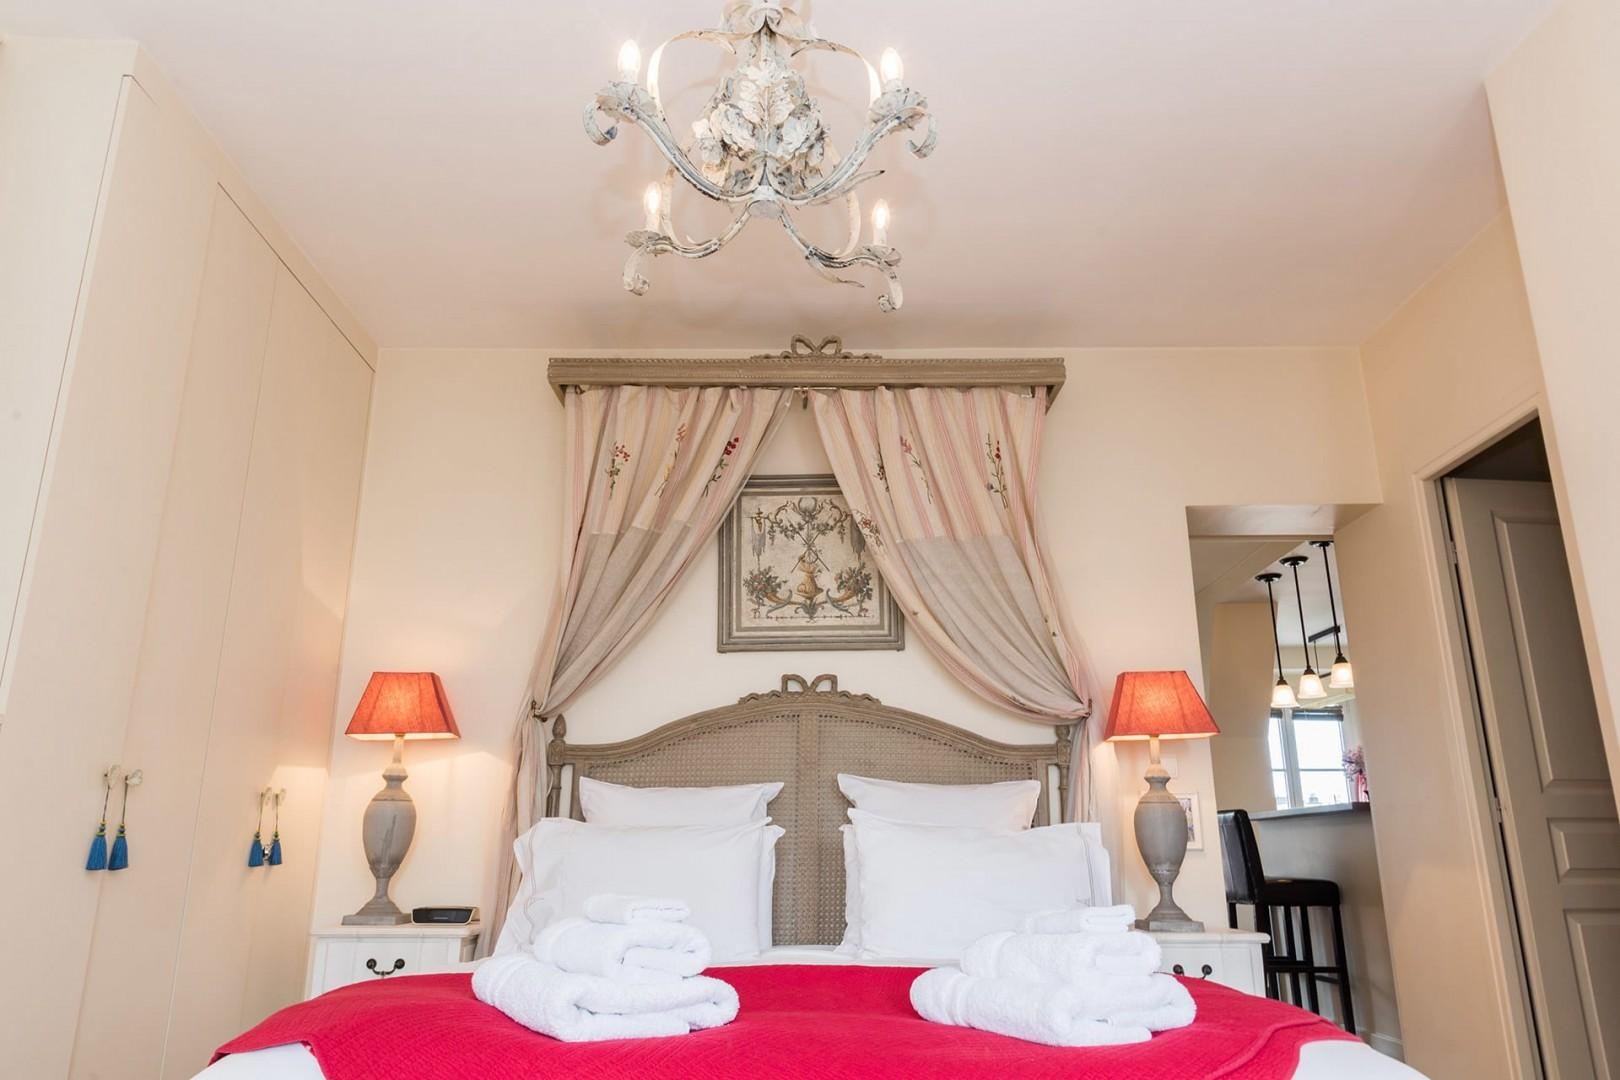 Relax in the spacious bedroom with a romantic canopy bed.